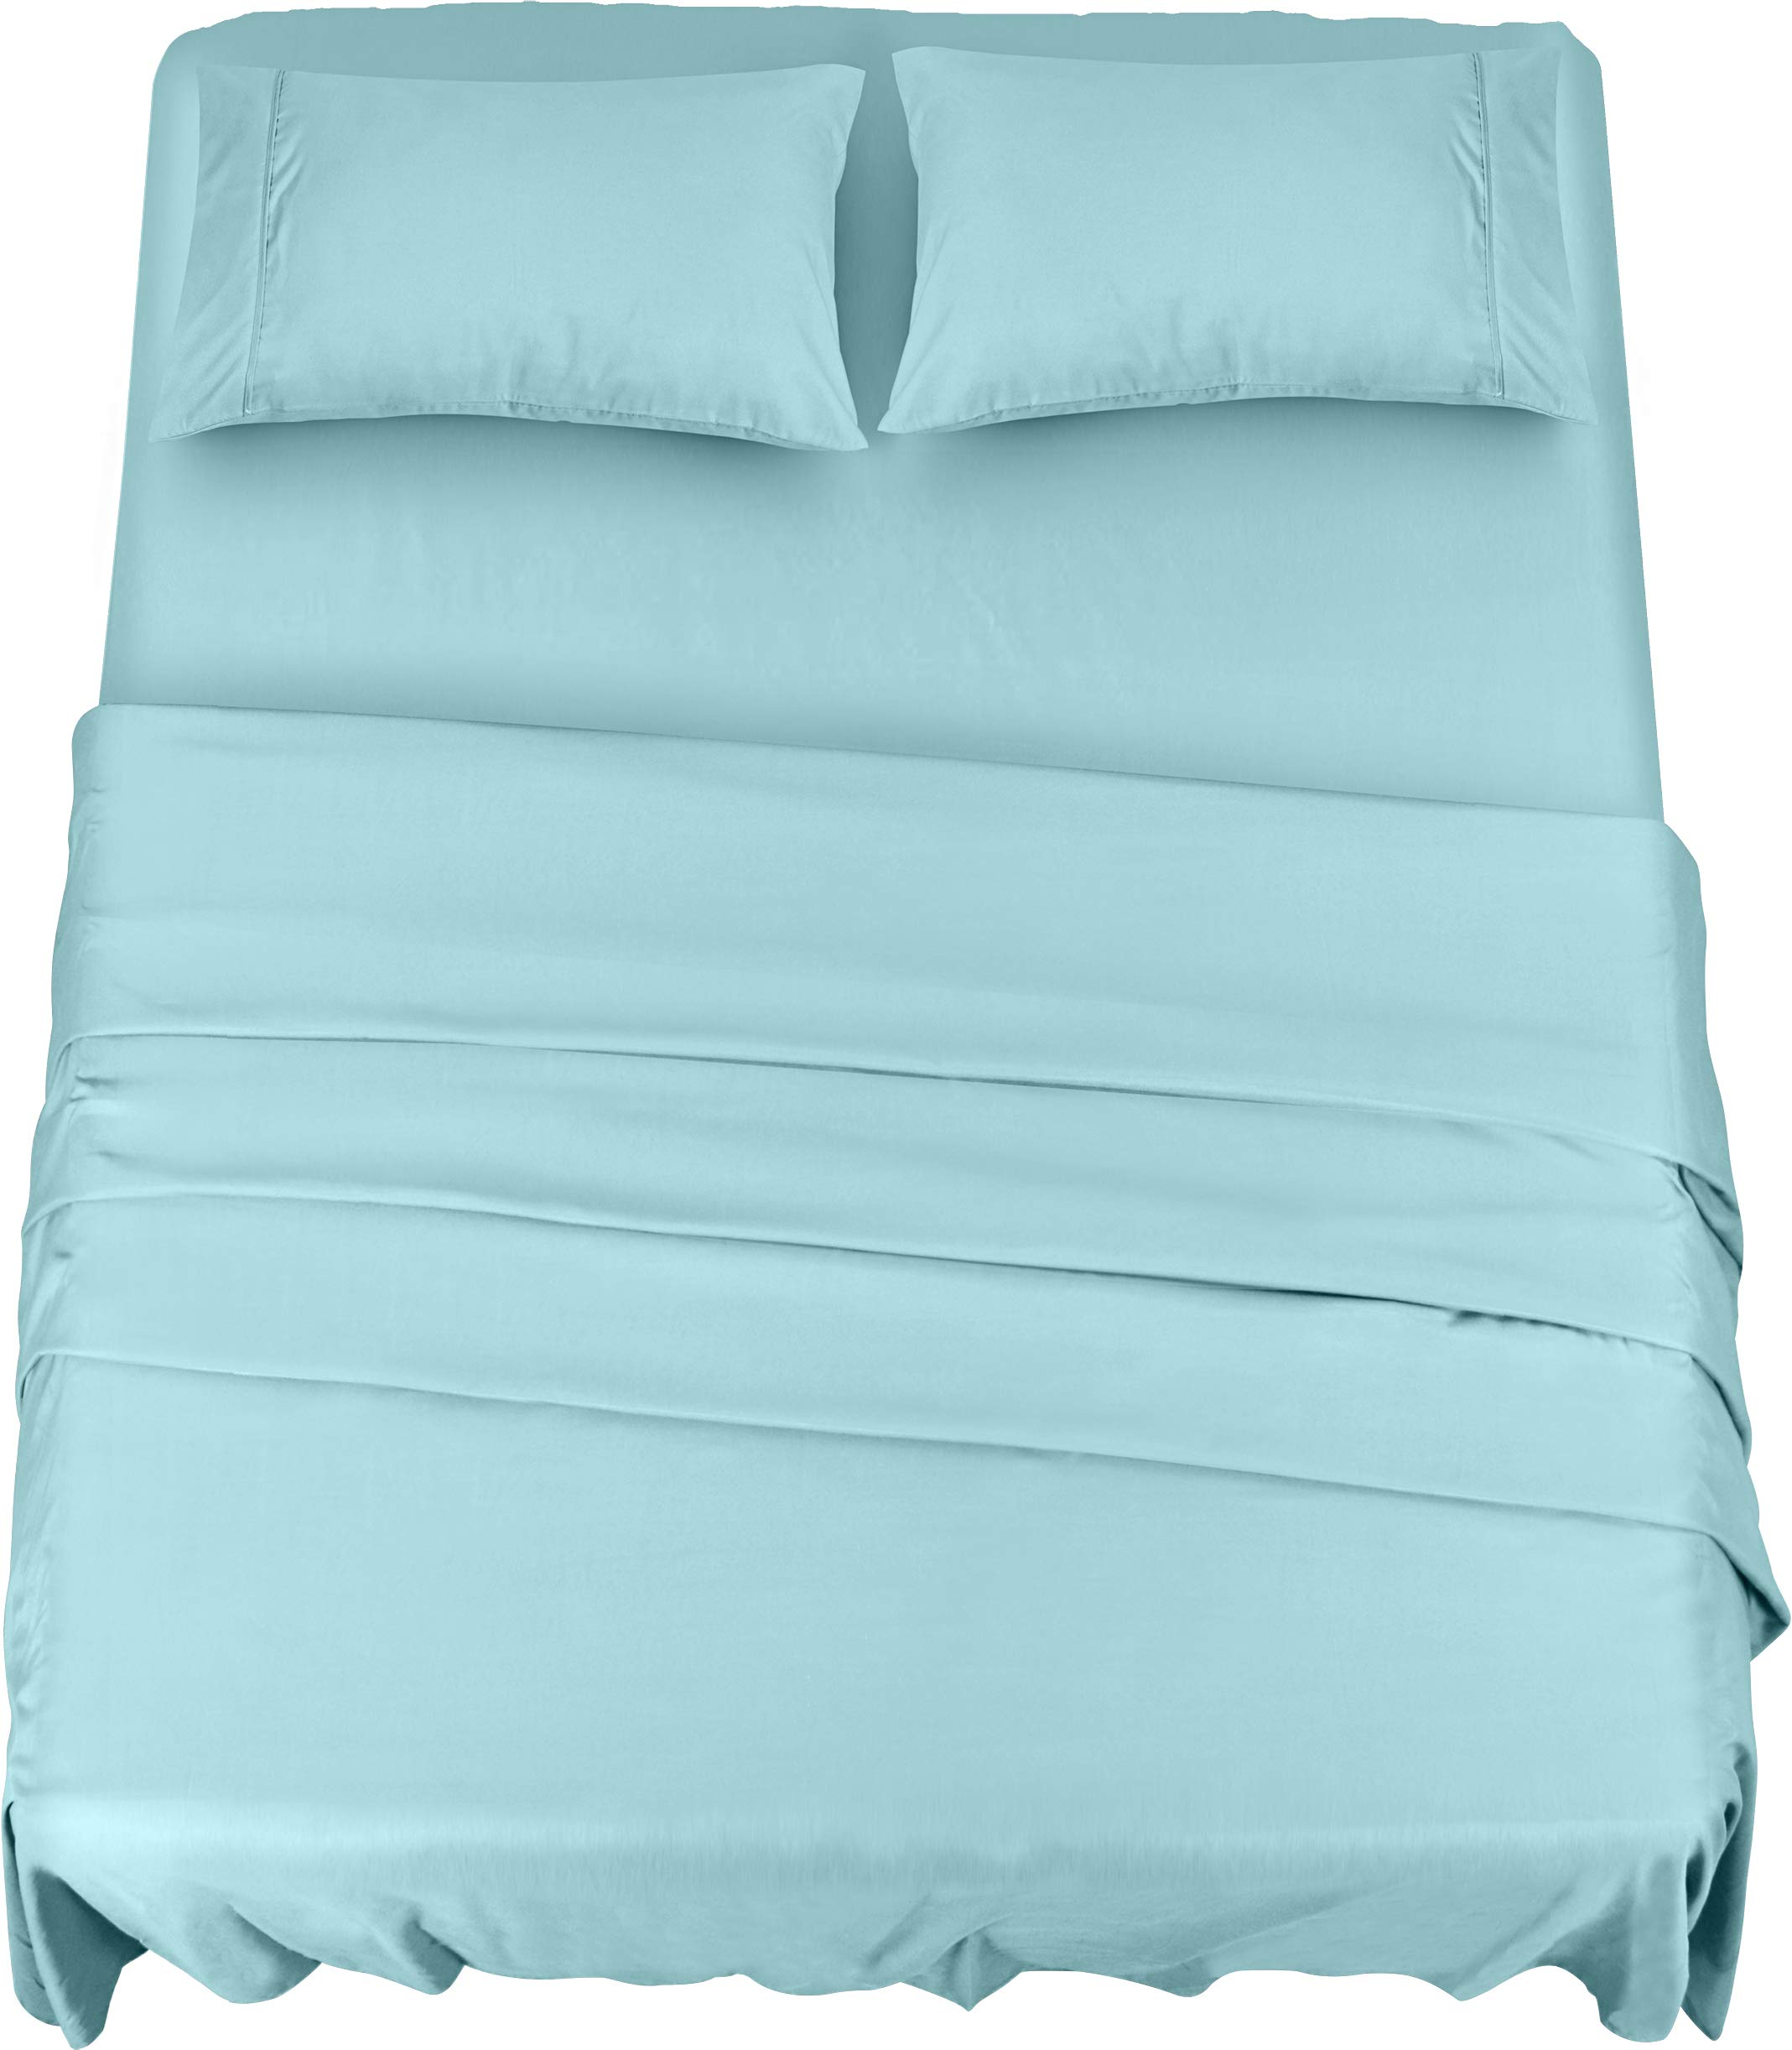 Utopia Bedding Bed Sheet Set - 4 Piece Queen Bedding - Soft Brushed Microfiber Fabric - Shrinkage & Fade Resistant - Easy Care (Queen, Blue)